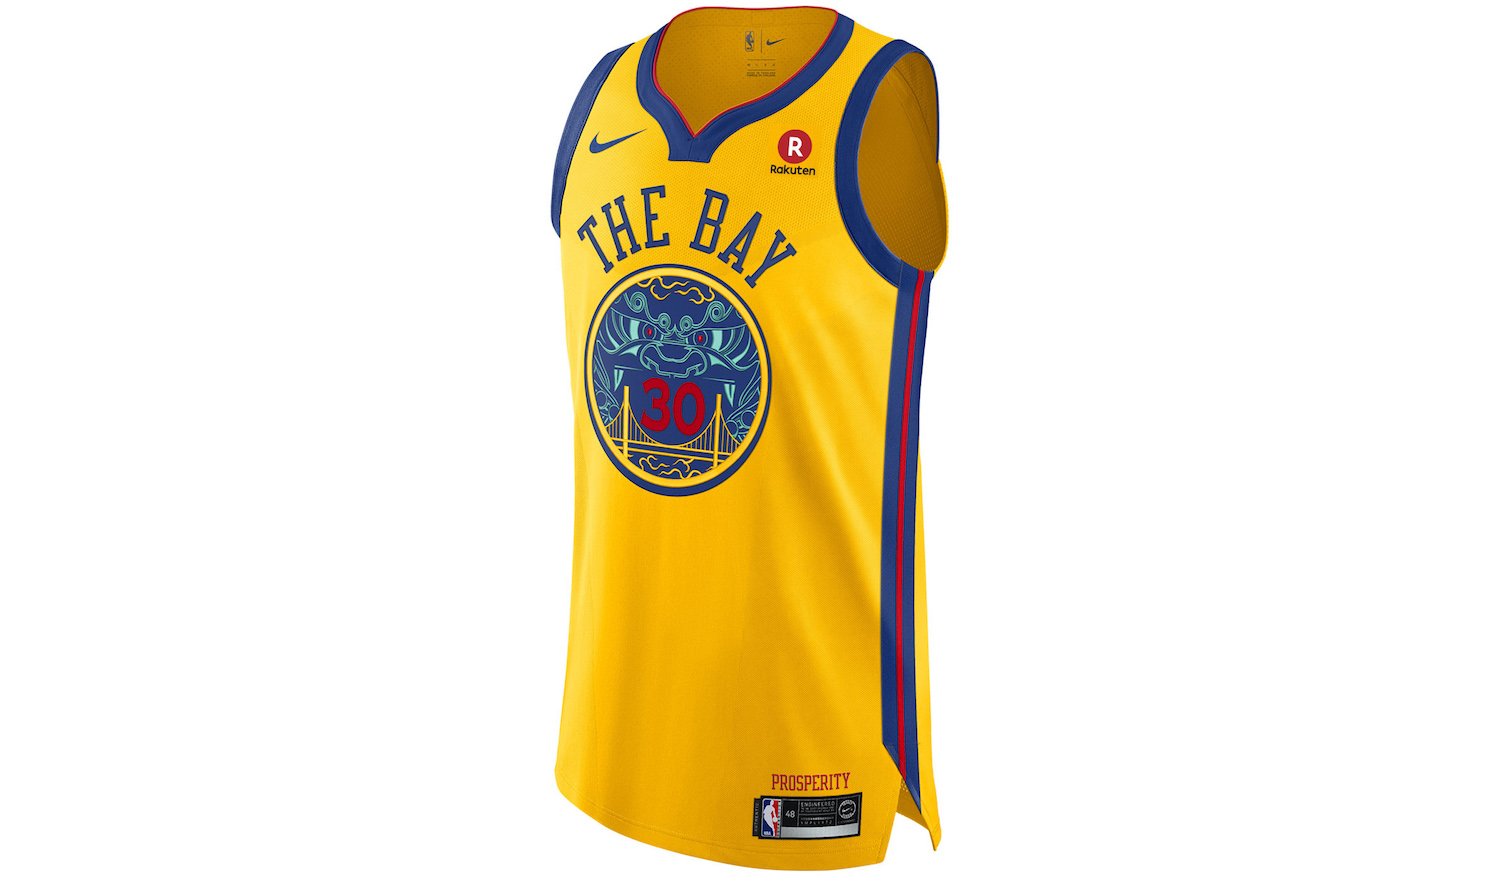 Golden State Warriors celebrate Chinese community with new uniforms